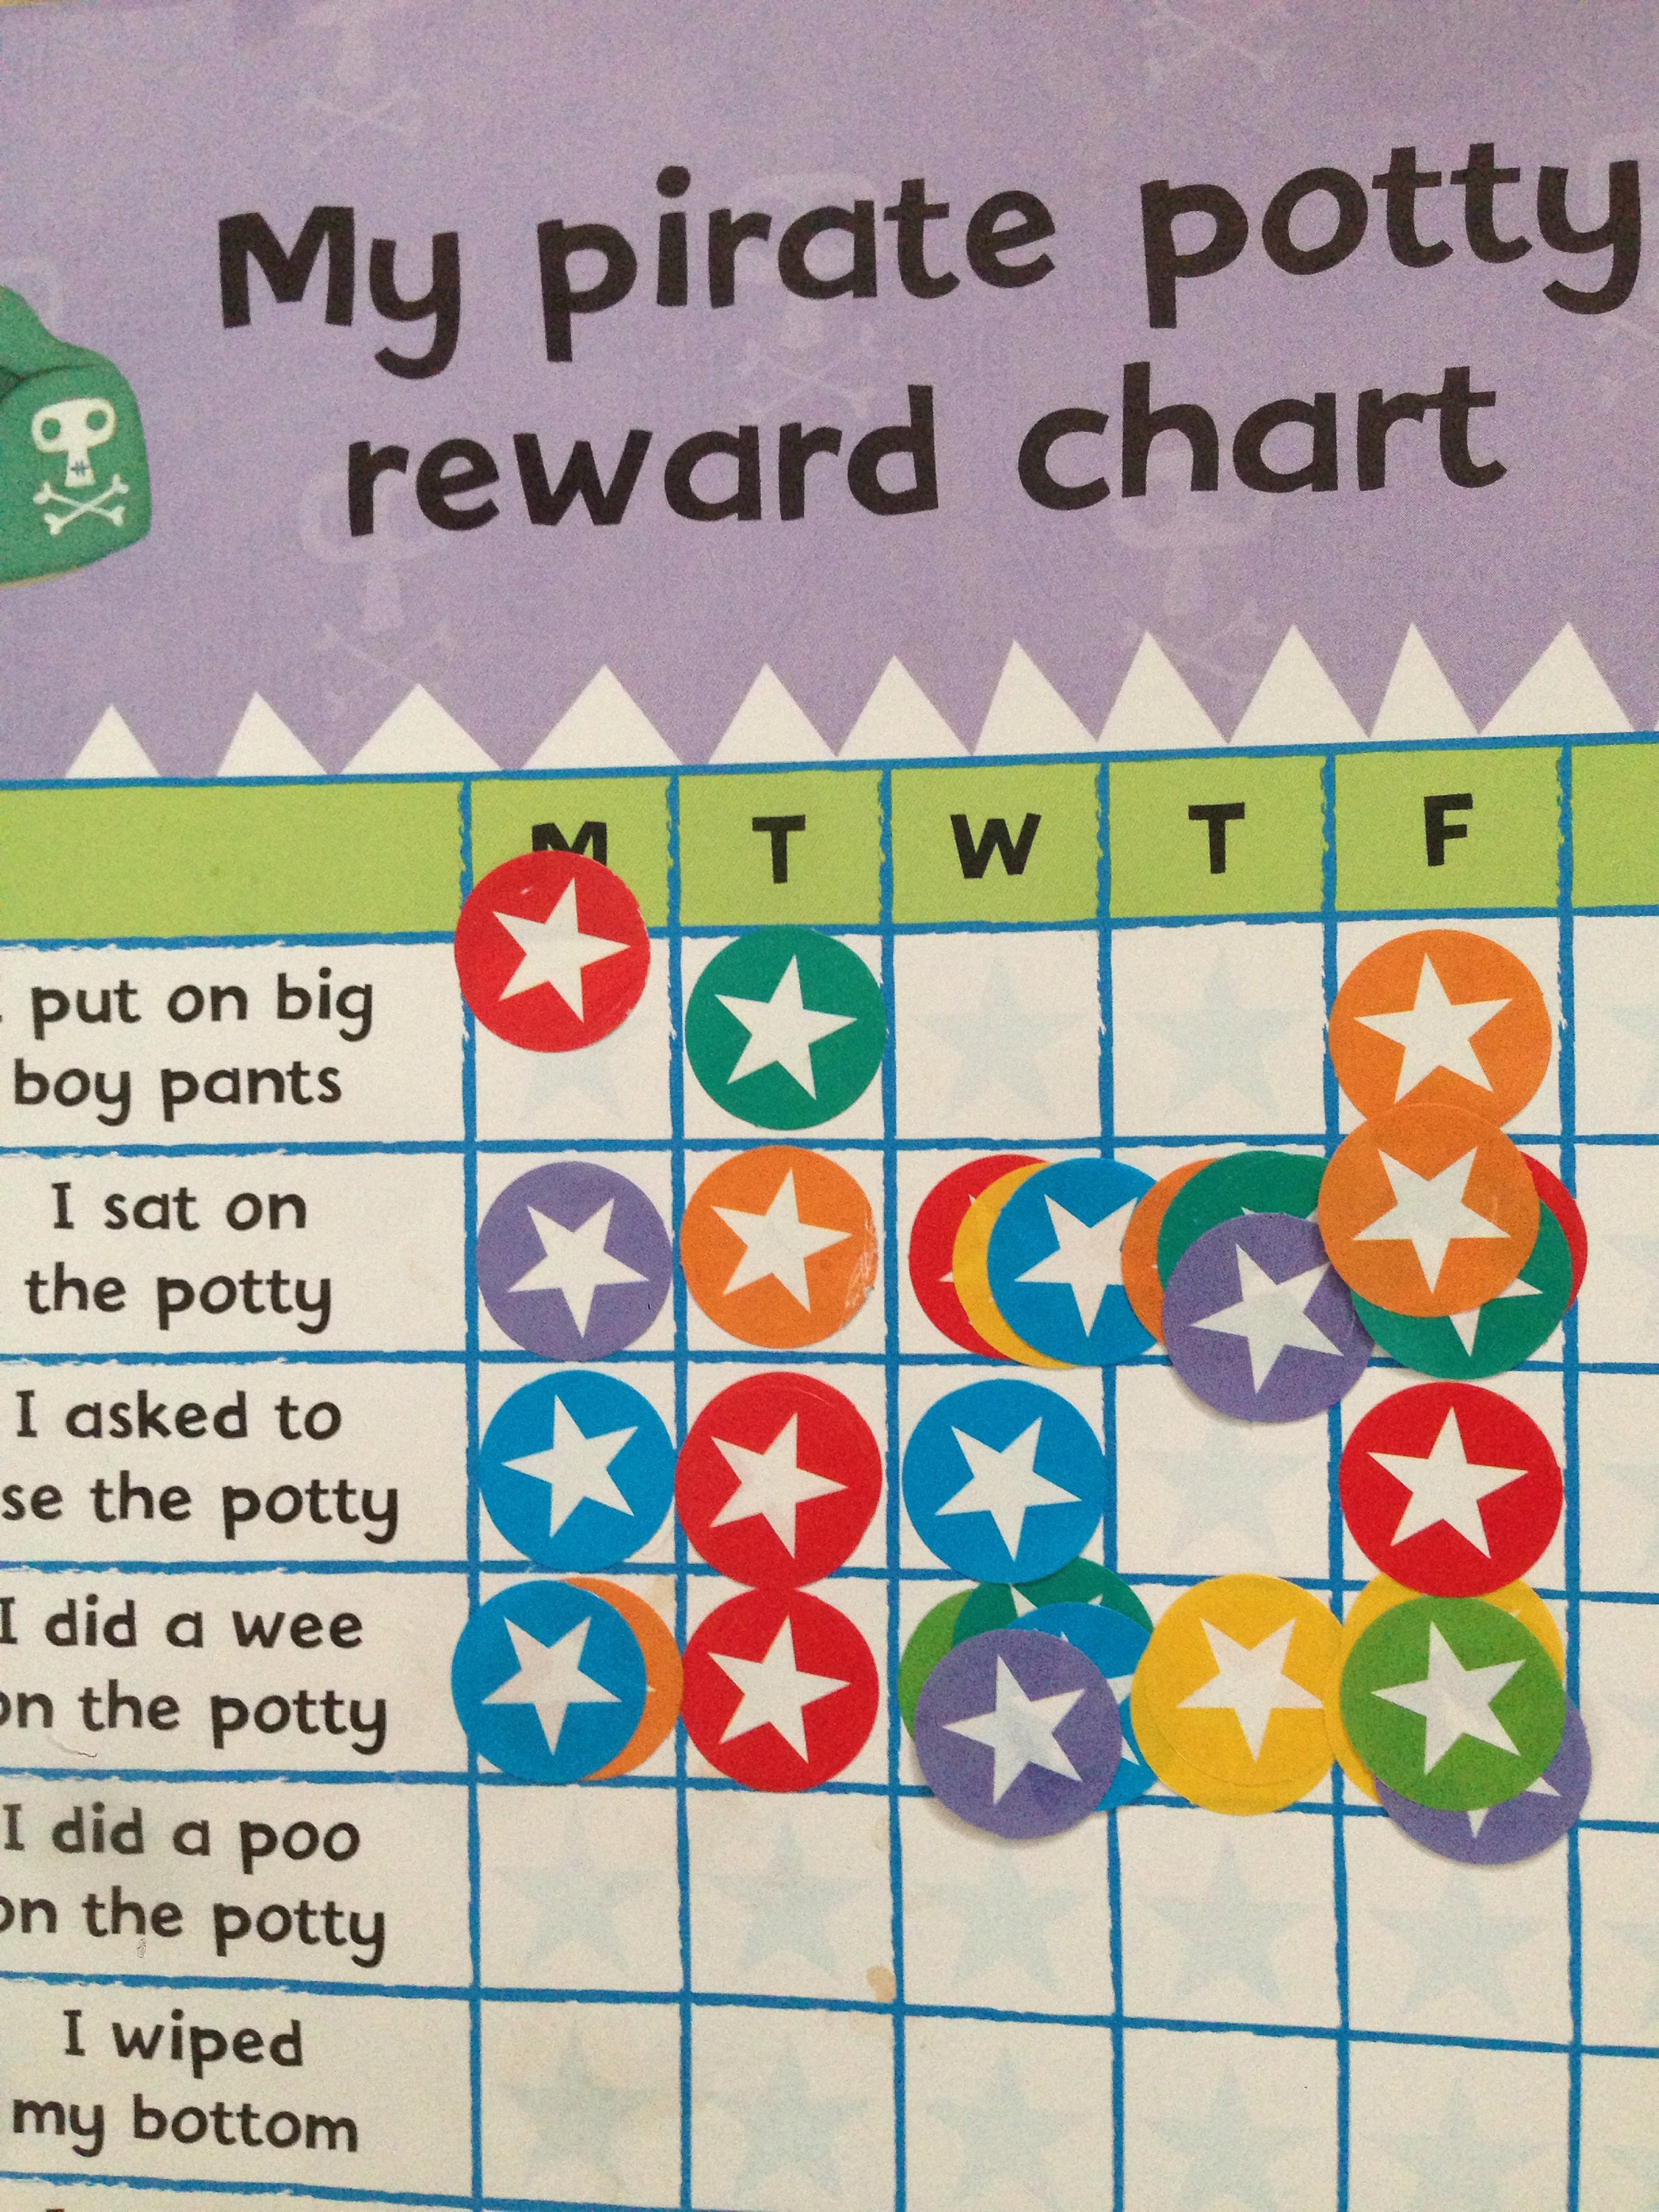 pirate pete sticker book star chart reward